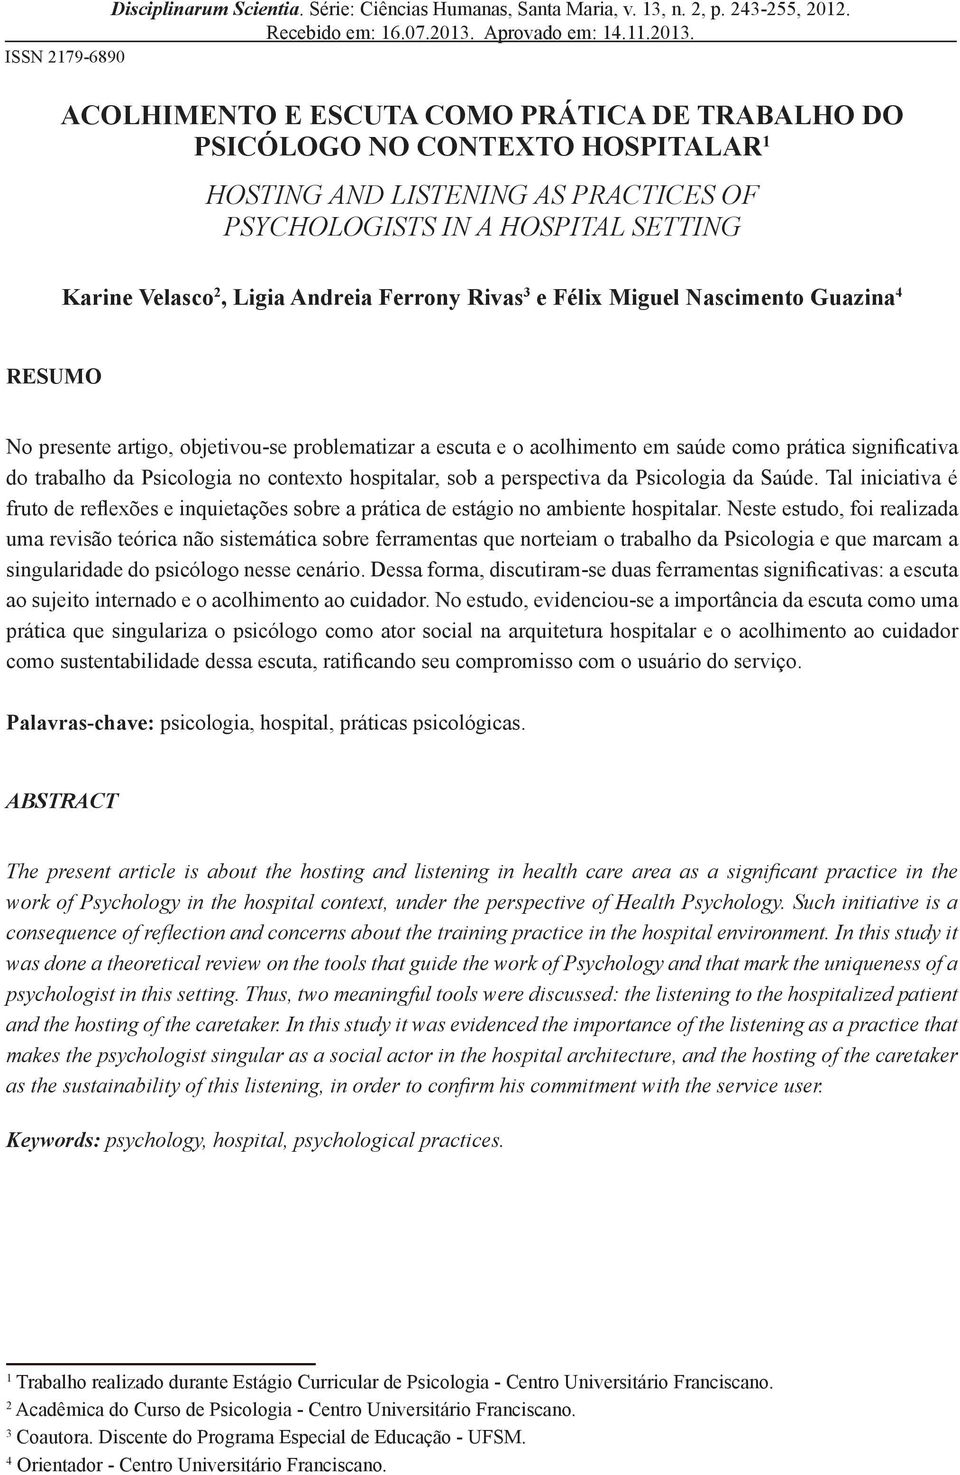 ISSN 2179-6890 ACOLHIMENTO E ESCUTA COMO PRÁTICA DE TRABALHO DO PSICÓLOGO NO CONTEXTO HOSPITALAR 1 HOSTING AND LISTENING AS PRACTICES OF PSYCHOLOGISTS IN A HOSPITAL SETTING Karine Velasco 2, Ligia